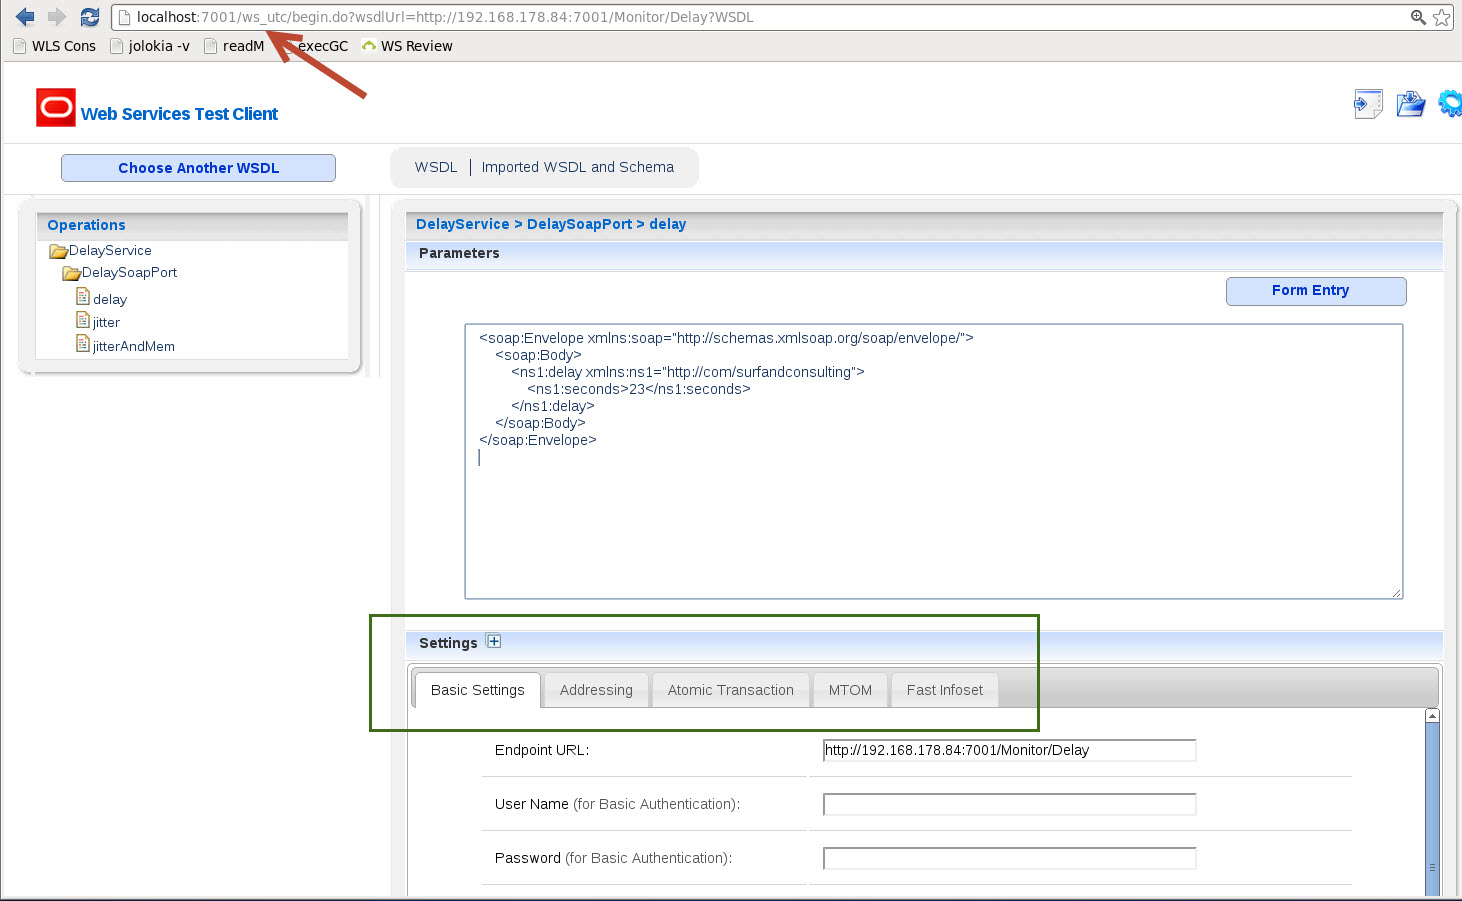 What happened with the Web Service Test Client in WebLogic 12 1 2